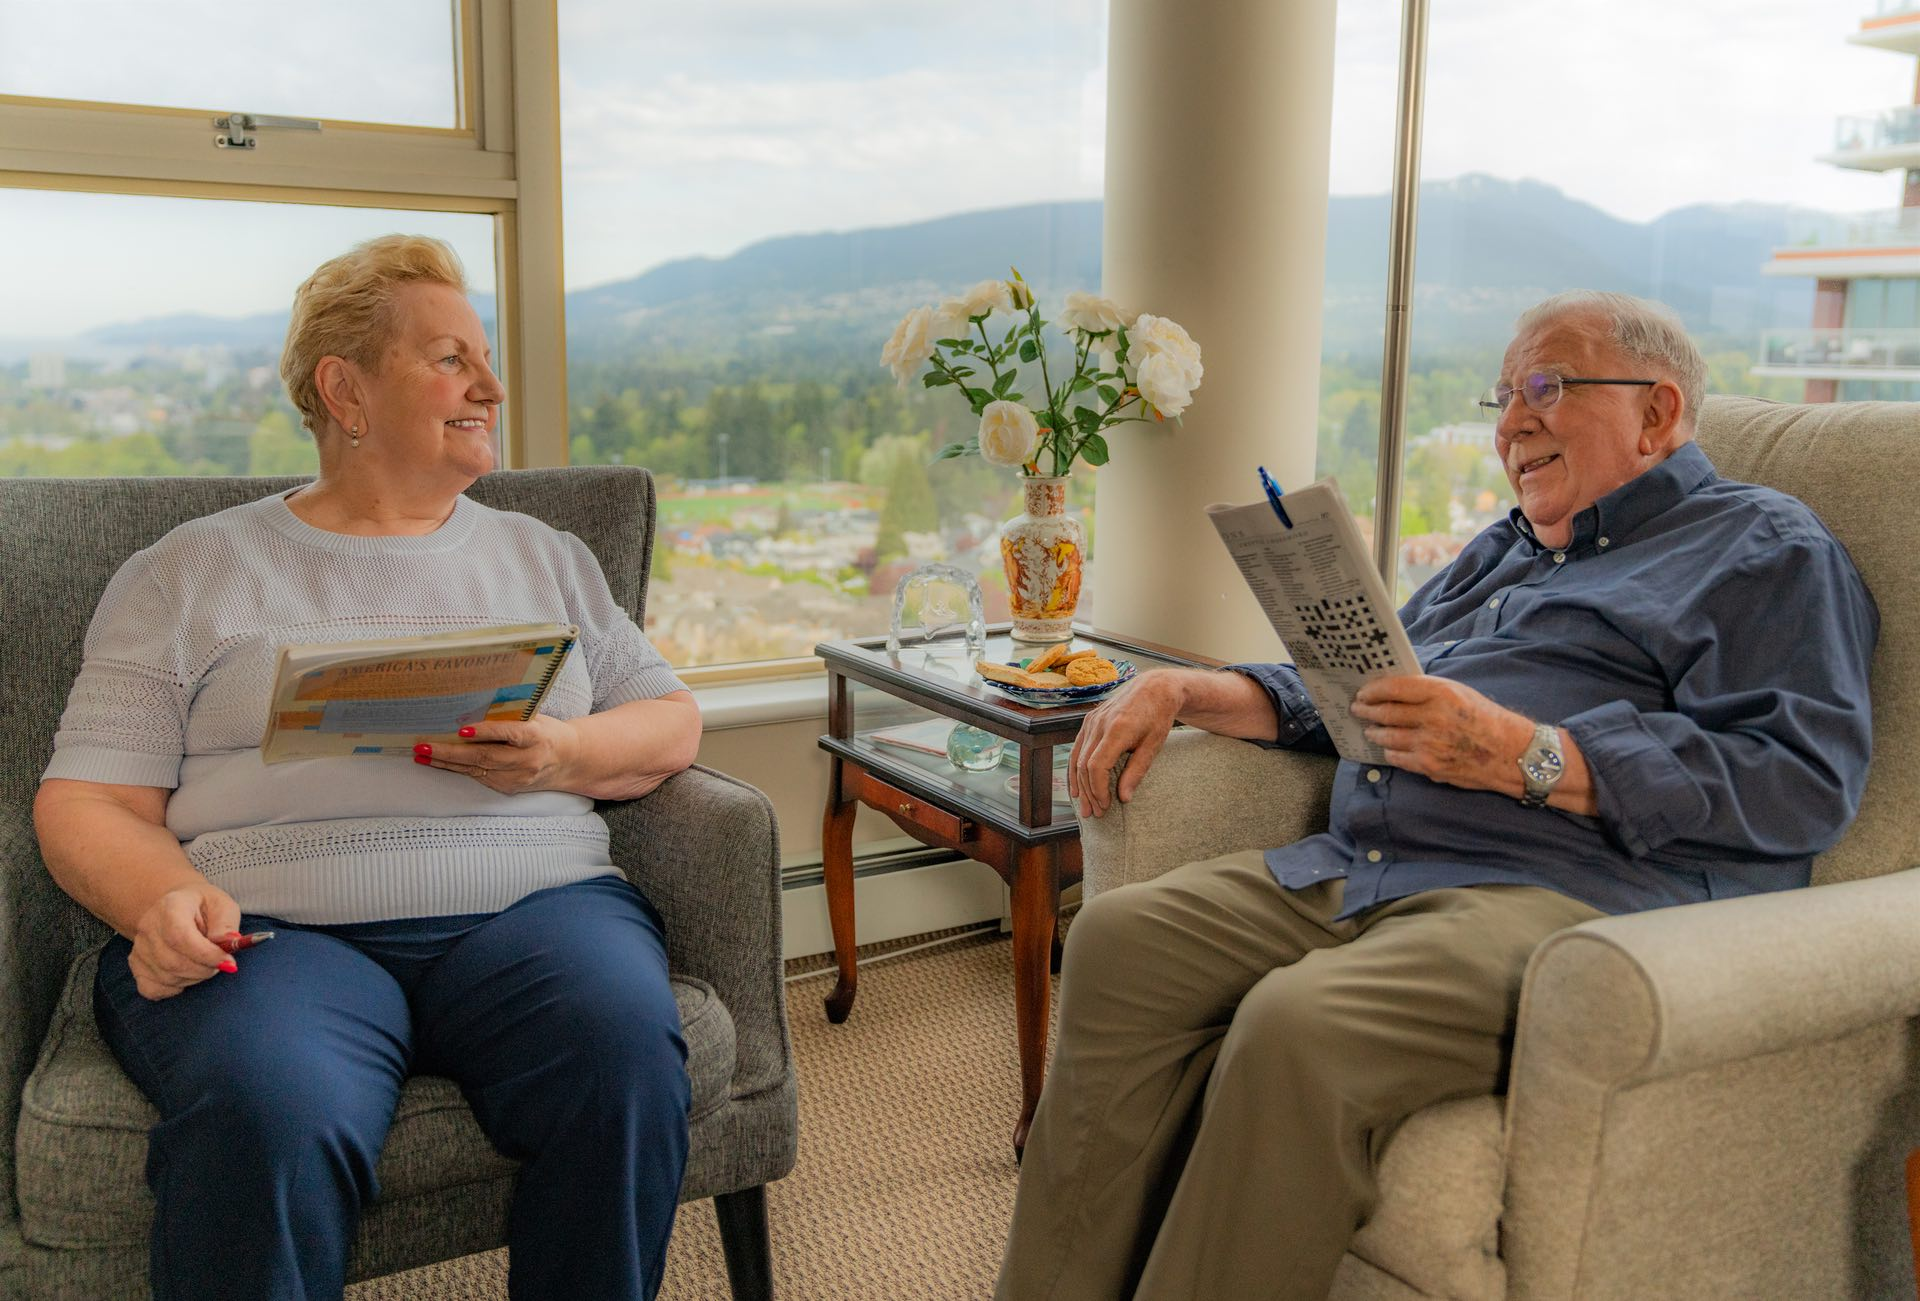 Summerhill PARC residents Marlene and Harry chatting in their suite